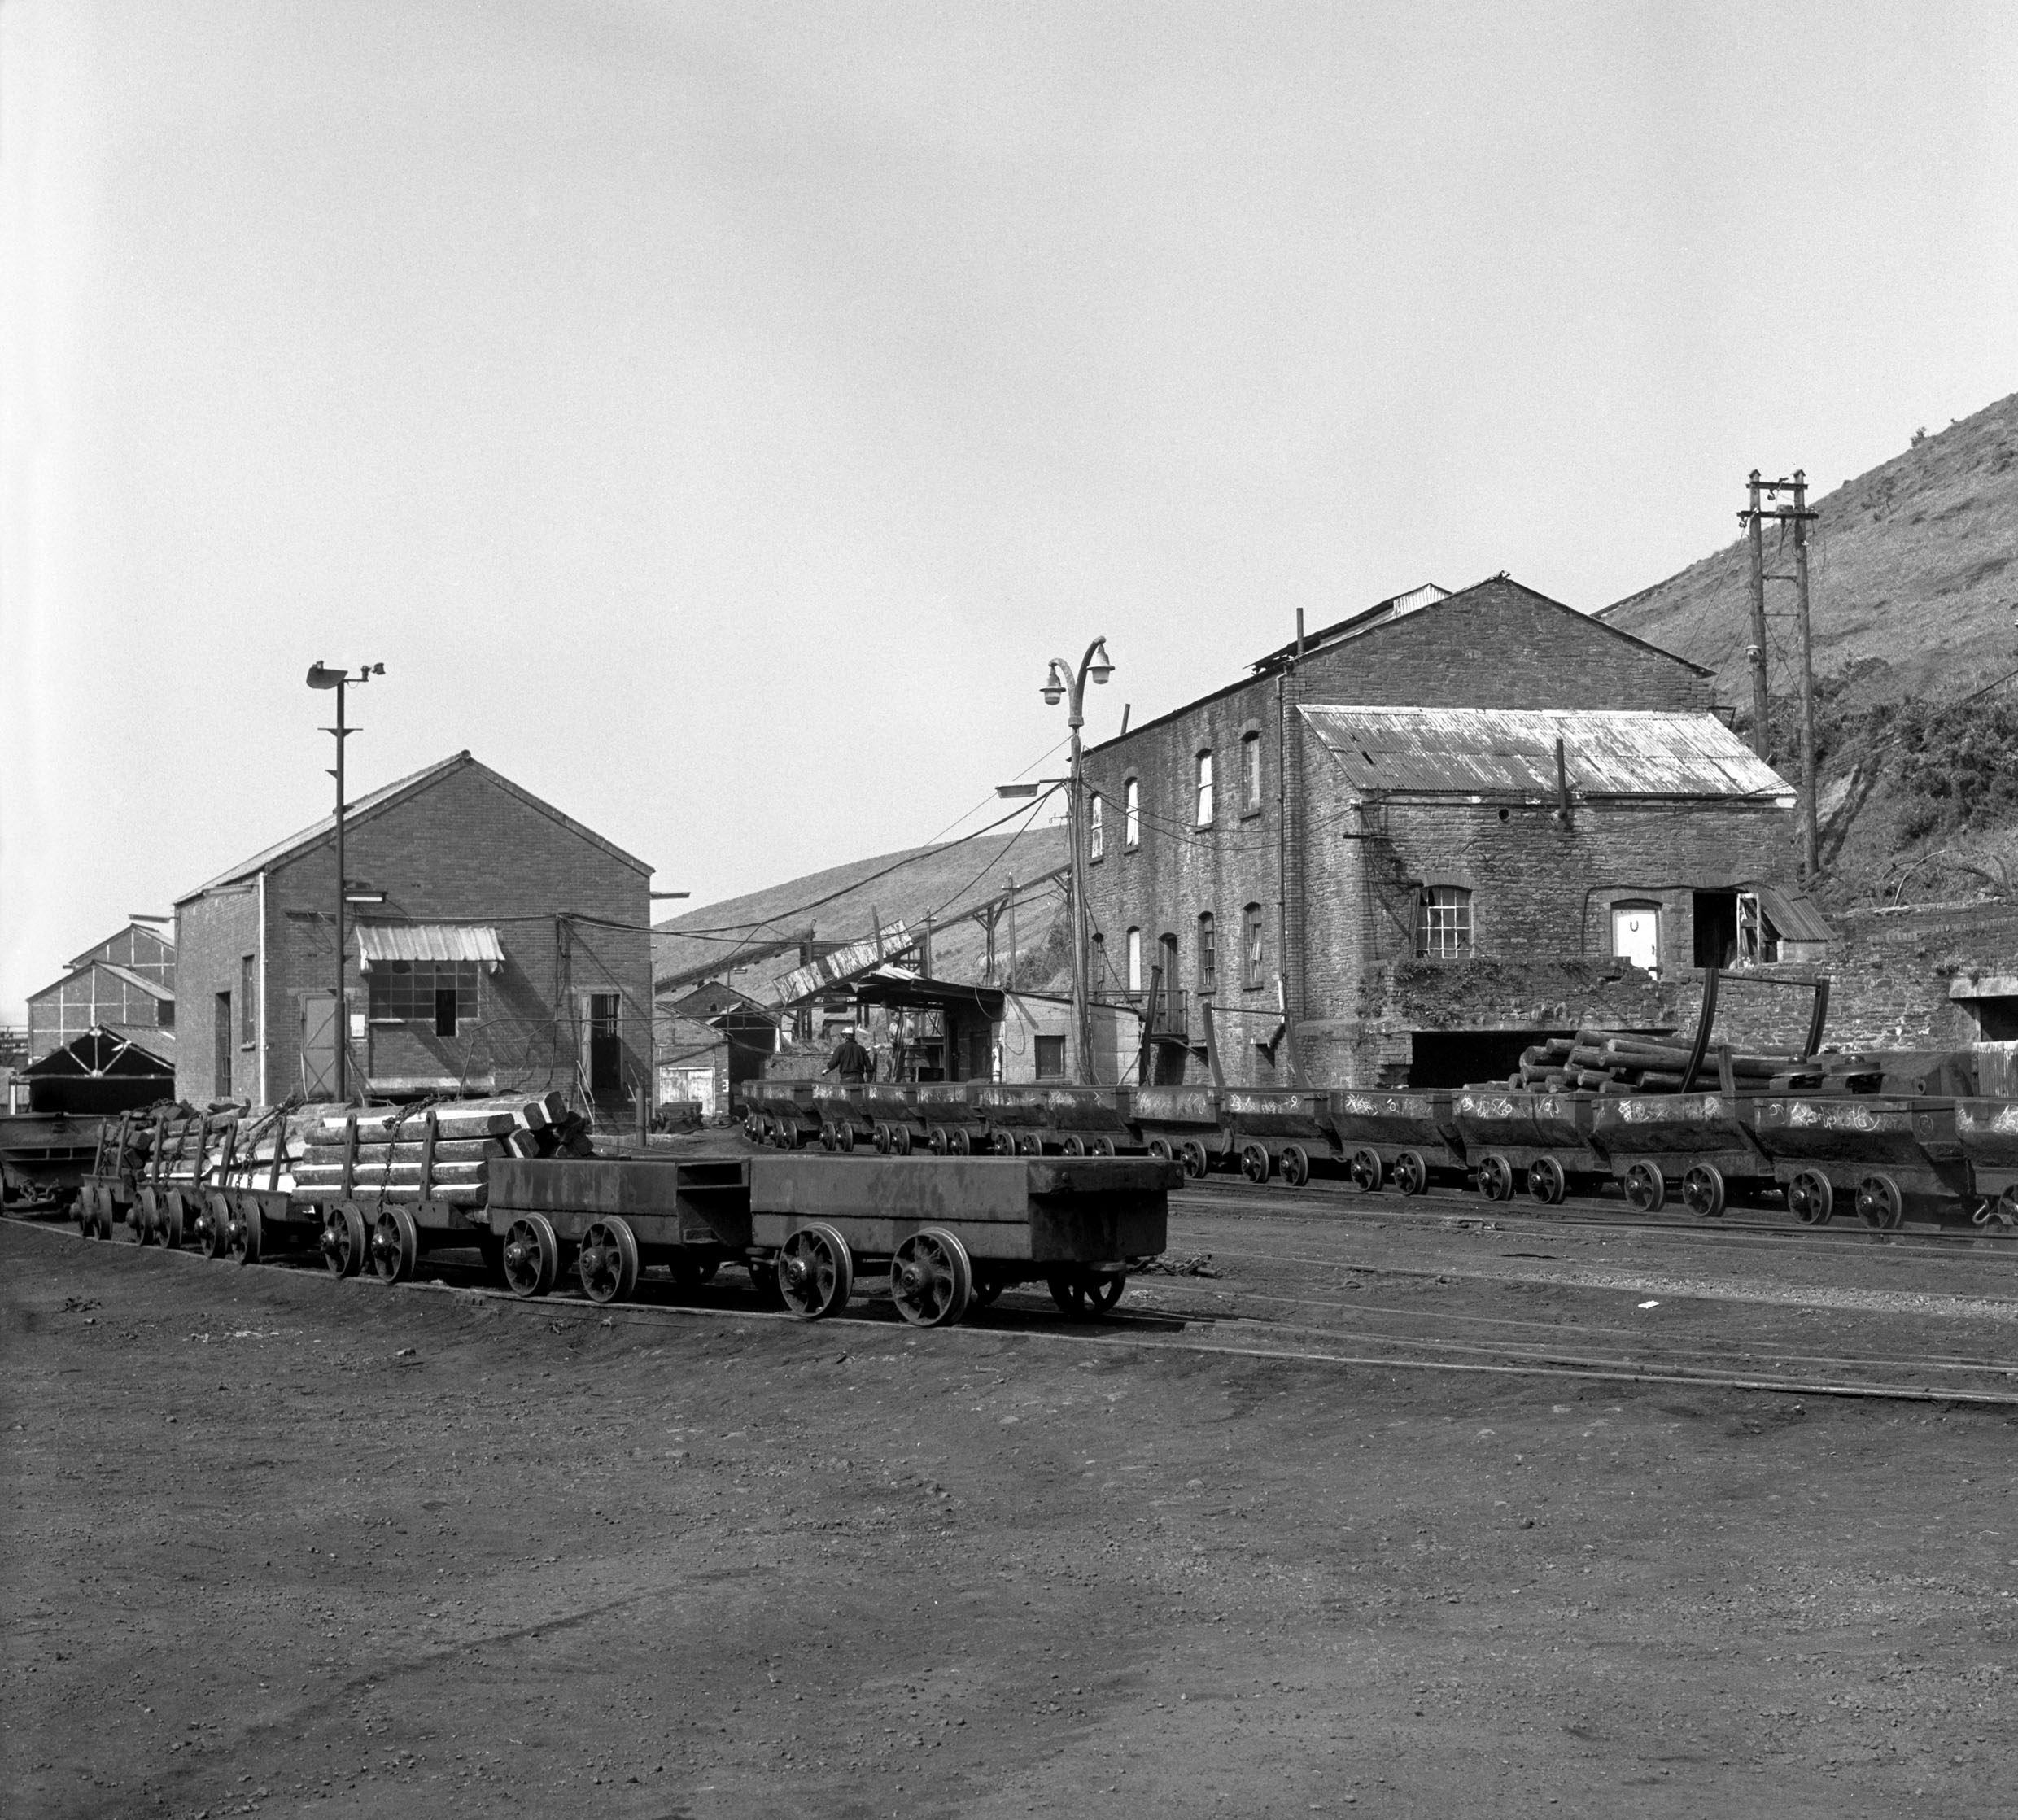 Graig Merthyr Colliery yard in 1977 with a long journey of drams waiting to be run into the mine.